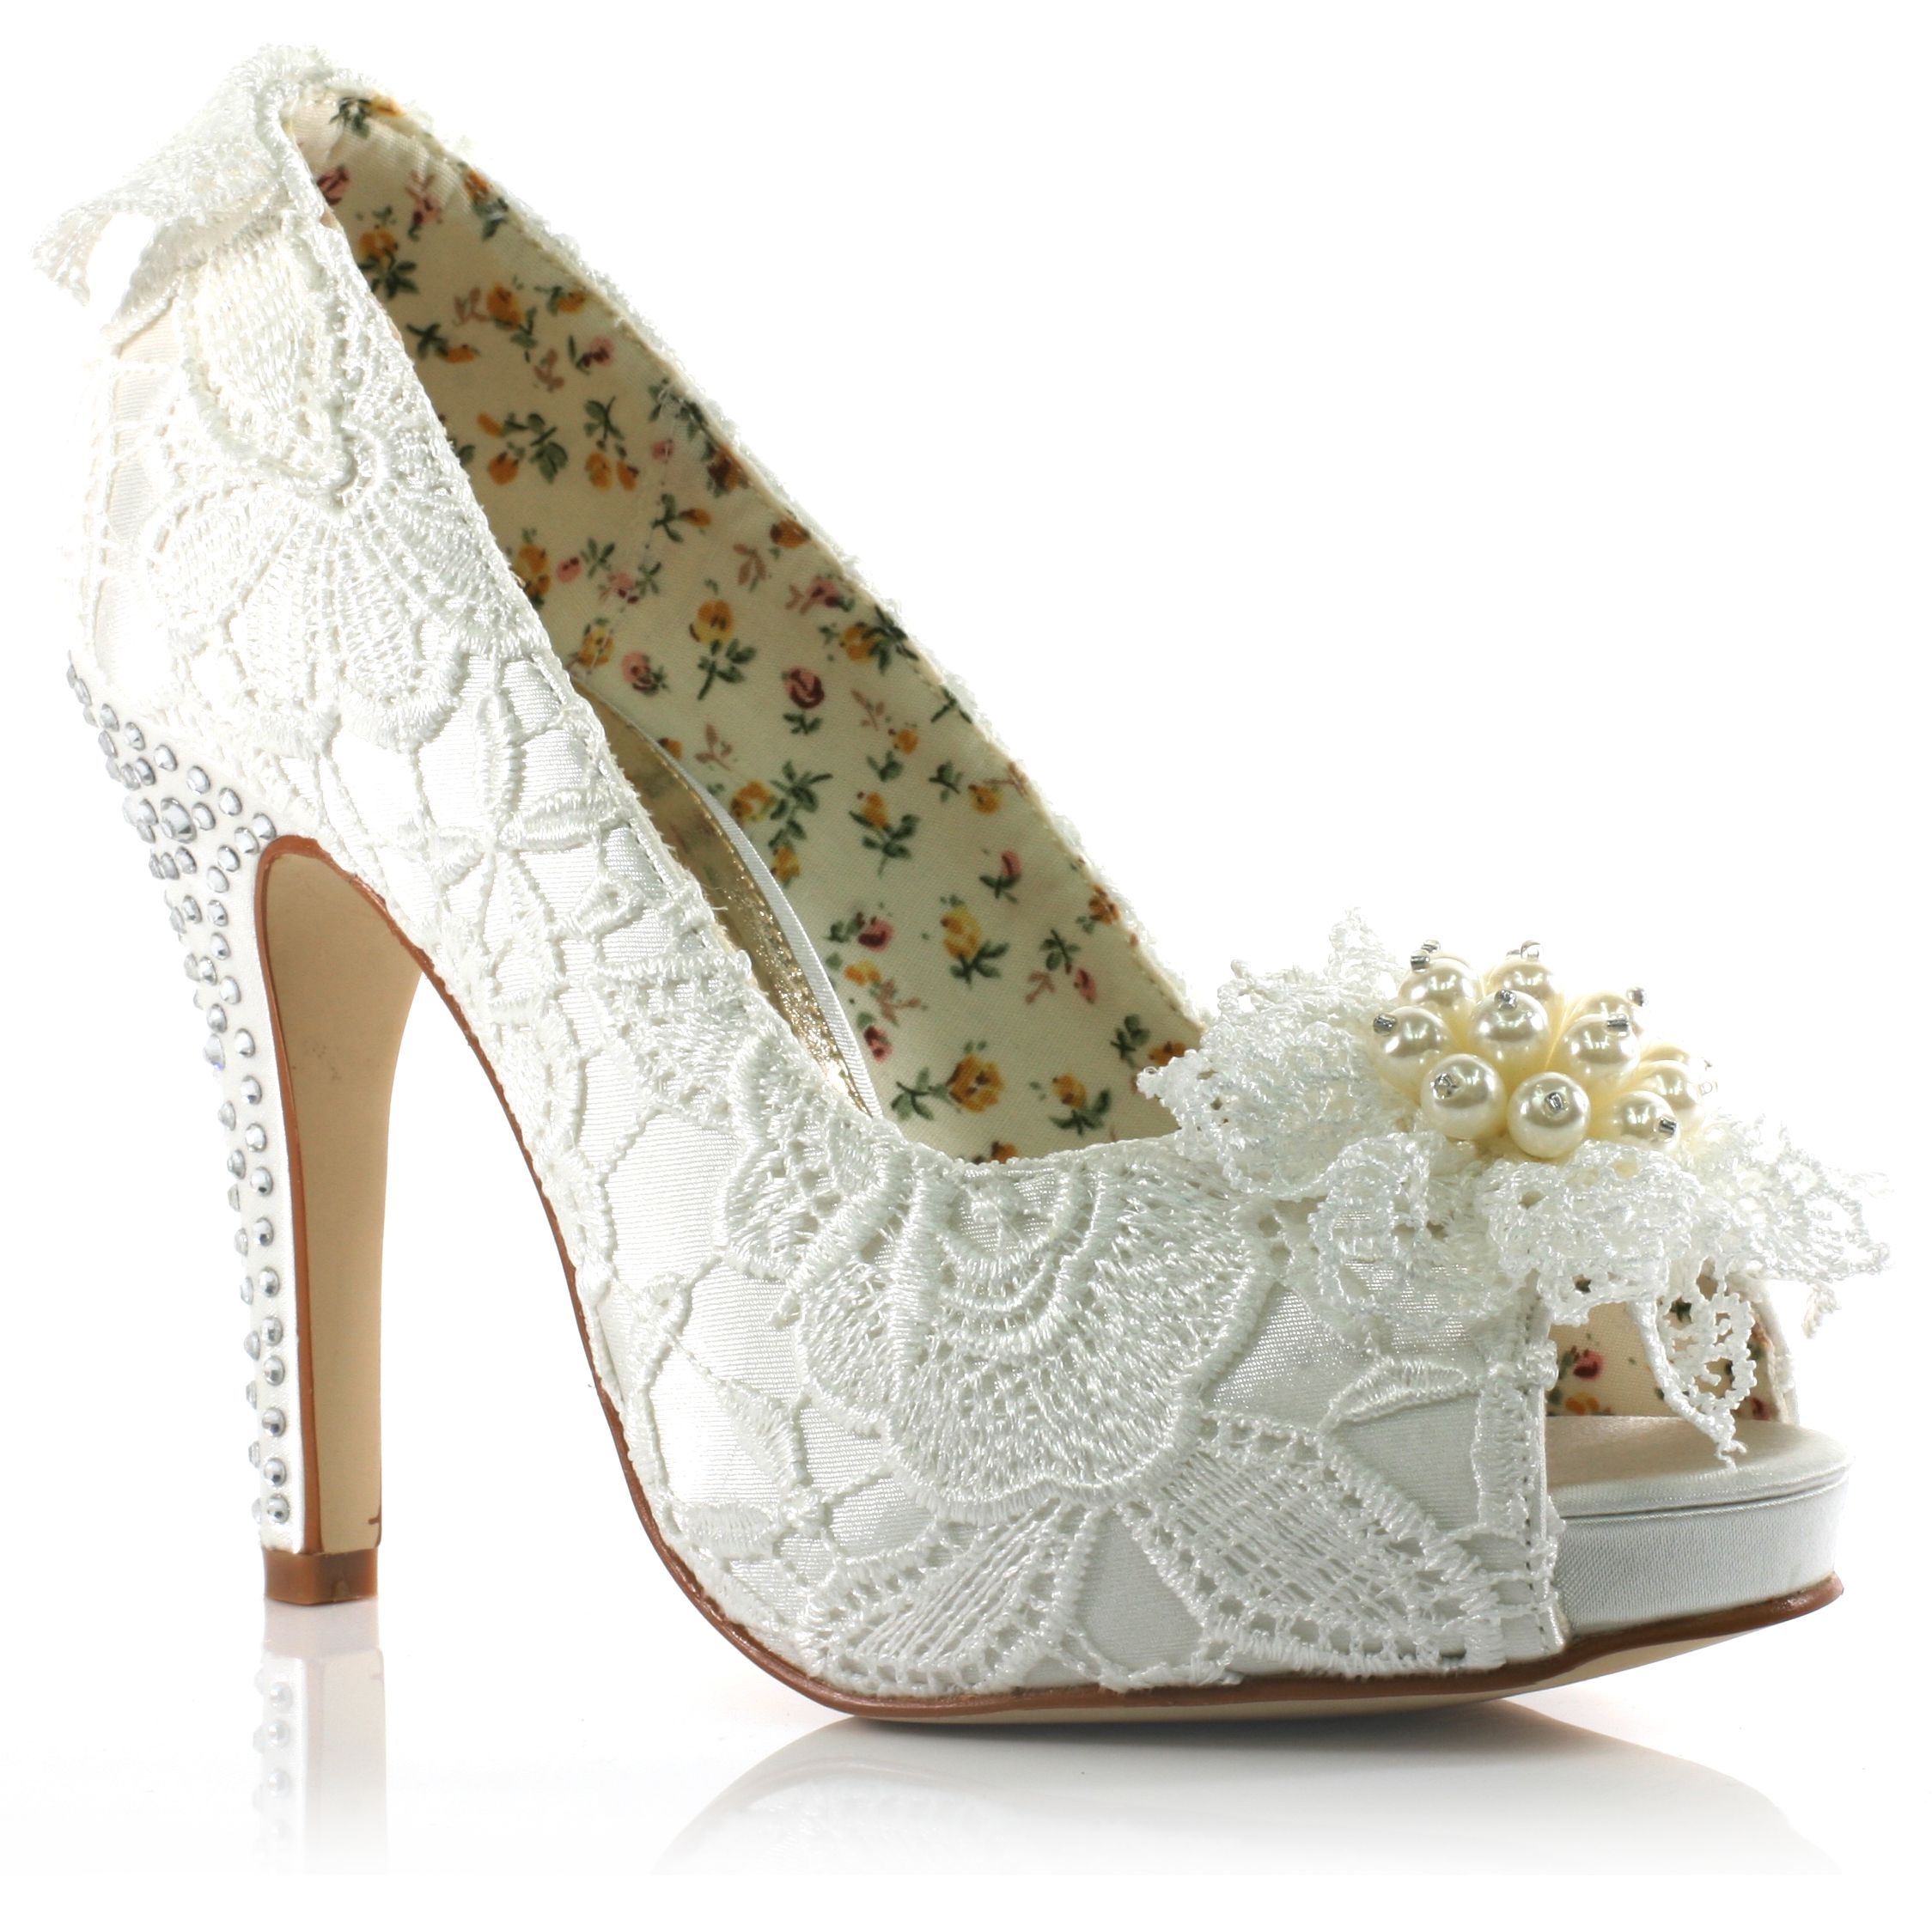 Top 25 ideas about Wedding Heels on Pinterest | Wedding shoes ...